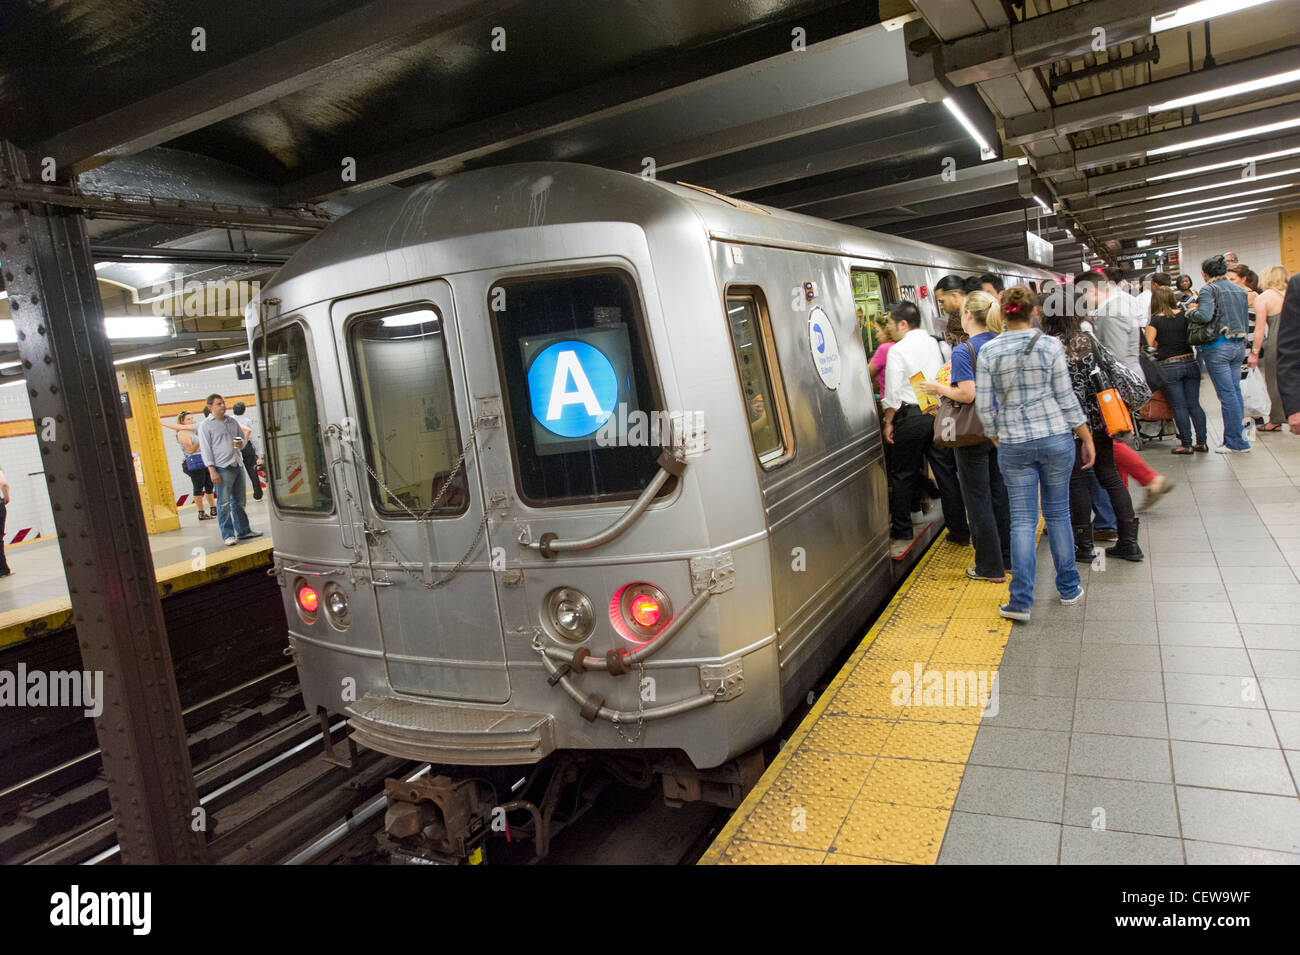 People boarding the A train New York subway line, New York City, USA - Stock Image